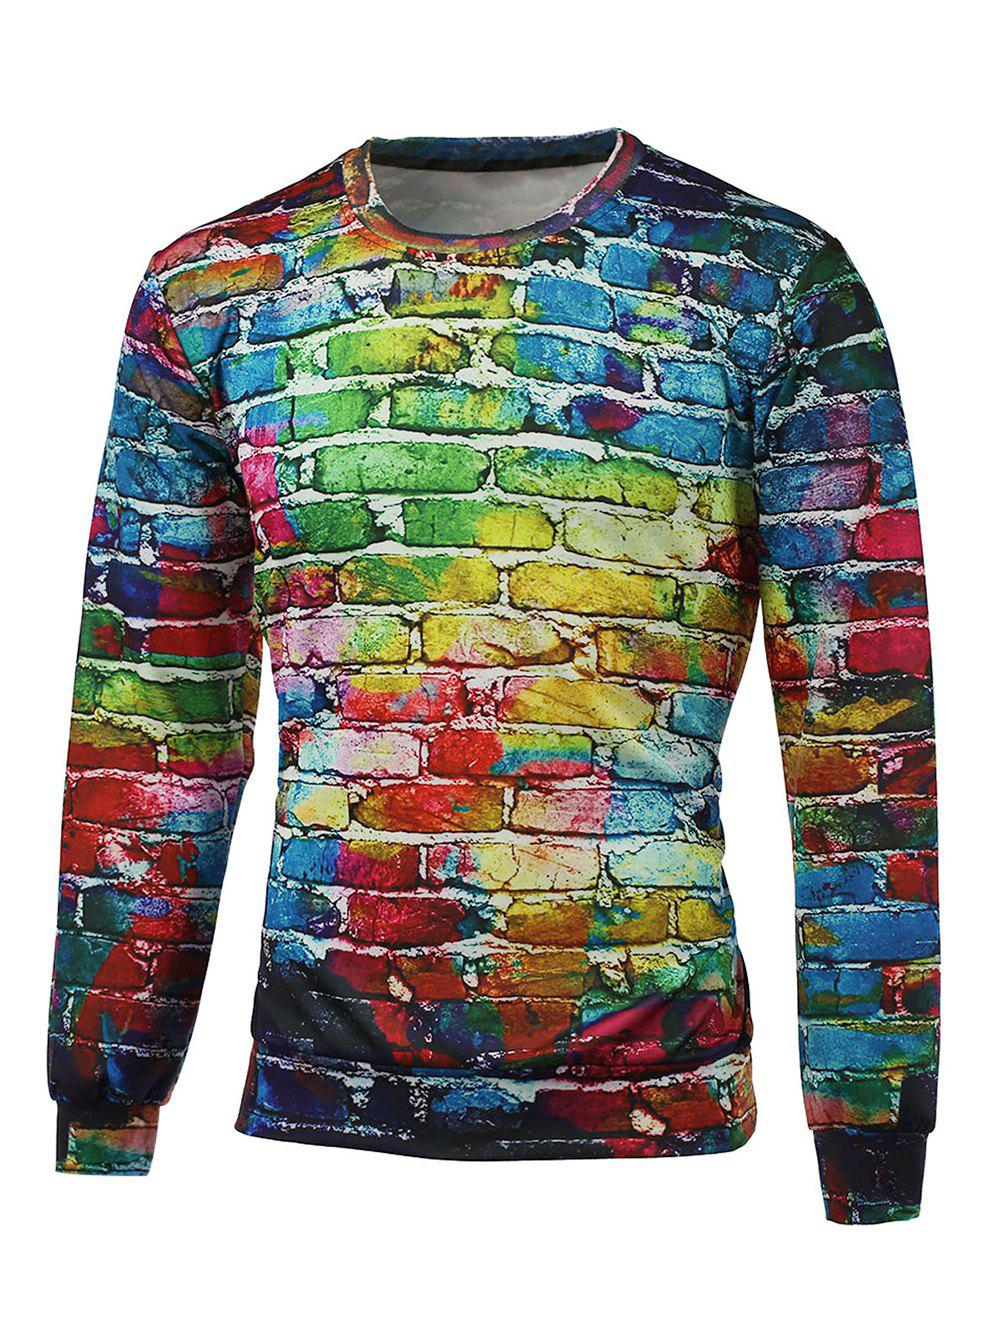 Crew Neck 3D Brick Wall Print Pullover Graphic Sweatshirts whatlees red brick sweatshirts for men